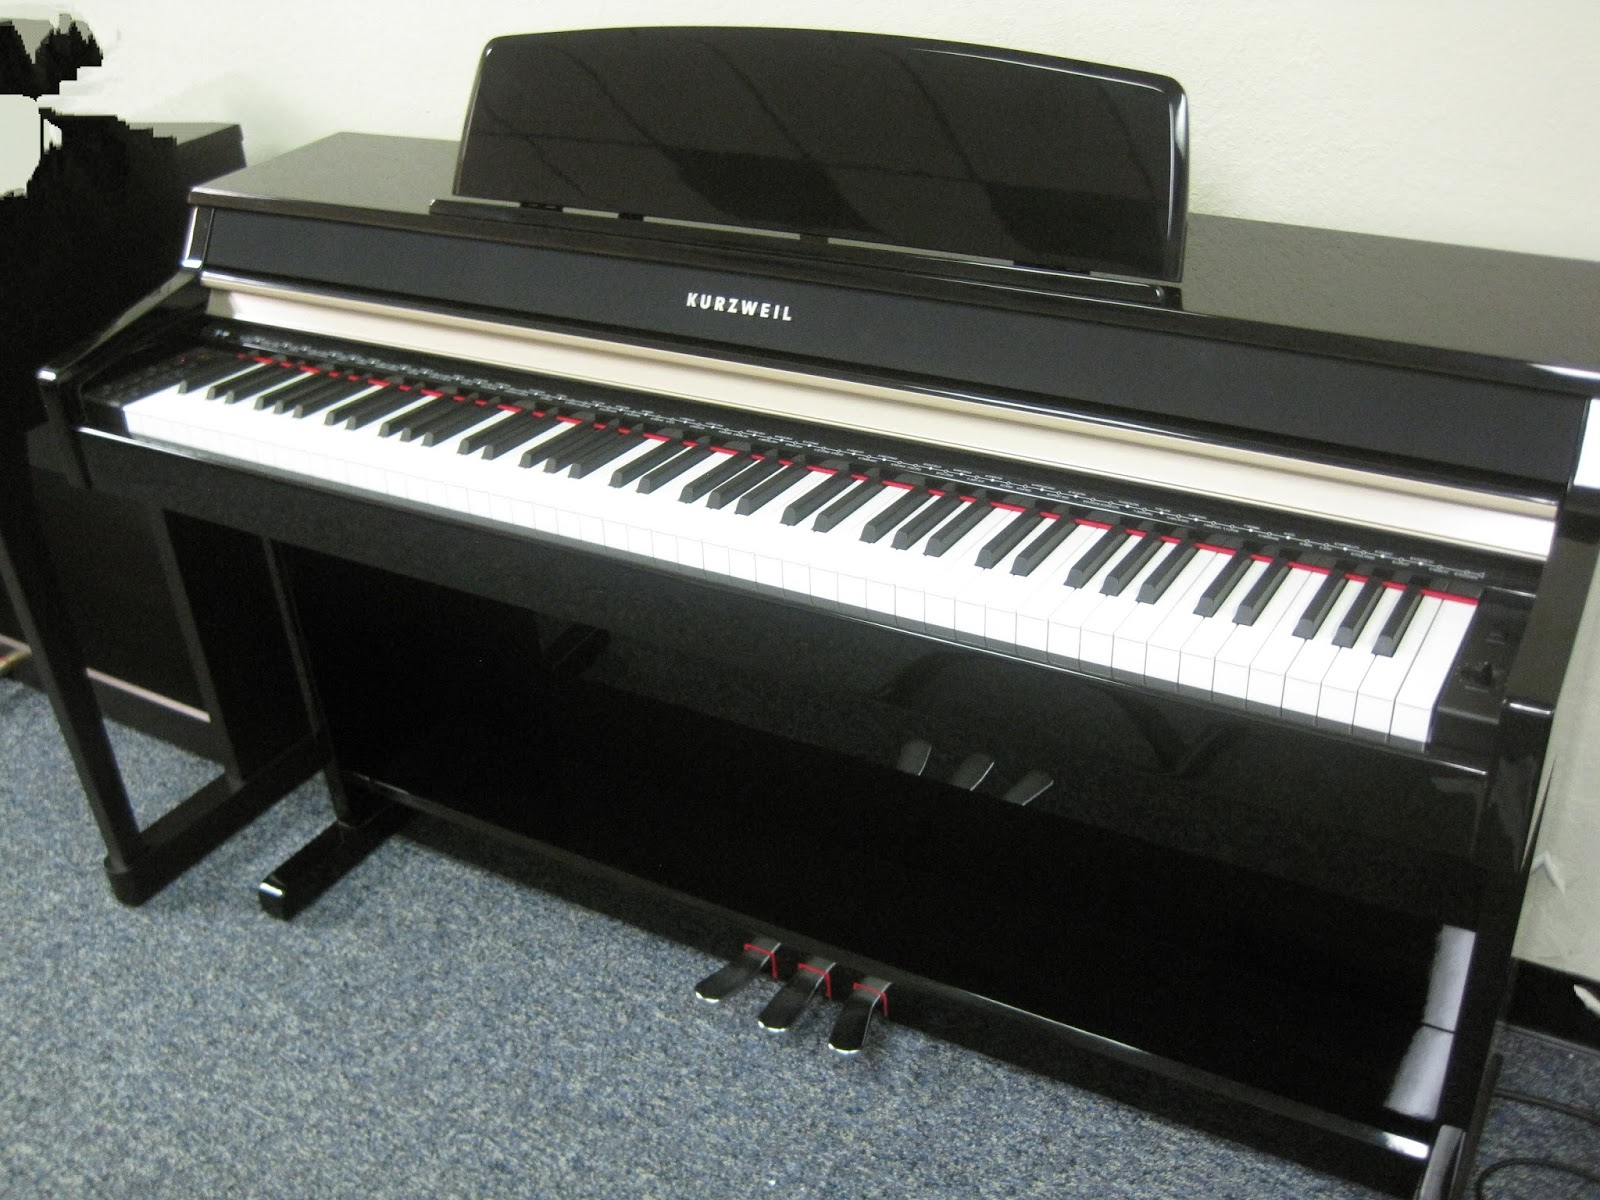 az piano reviews review kurzweil mp10 digital piano not recommended sounds good but bad